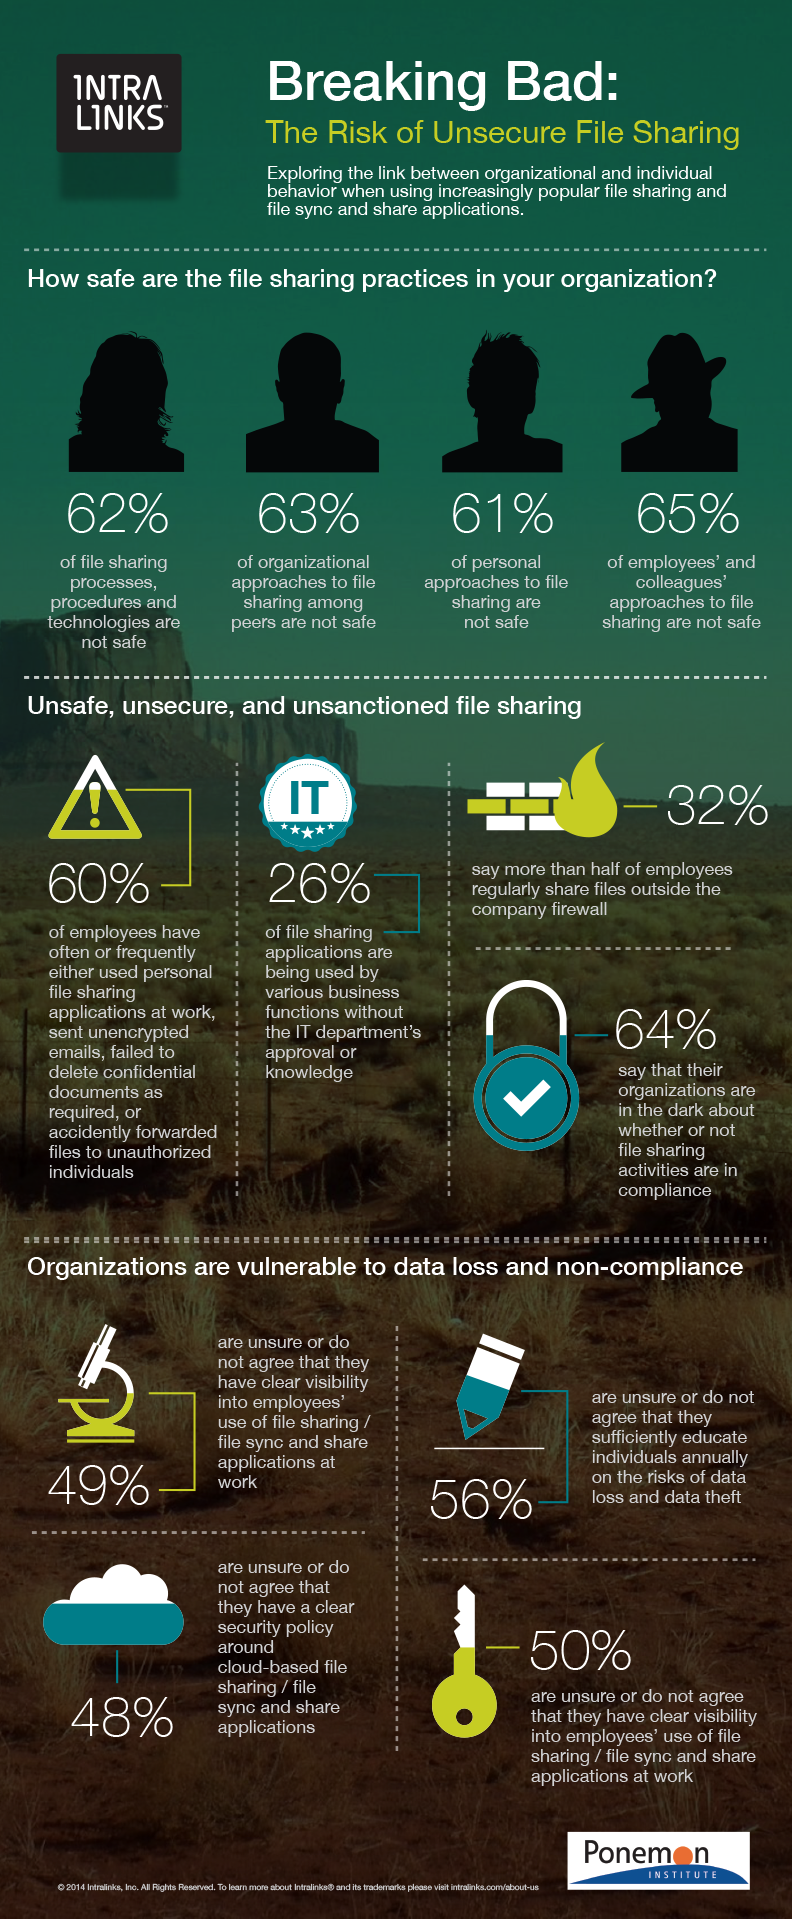 Intralinks and Ponemon Institute - Breaking Bad The Risk of Unsecure File Sharing Infographic